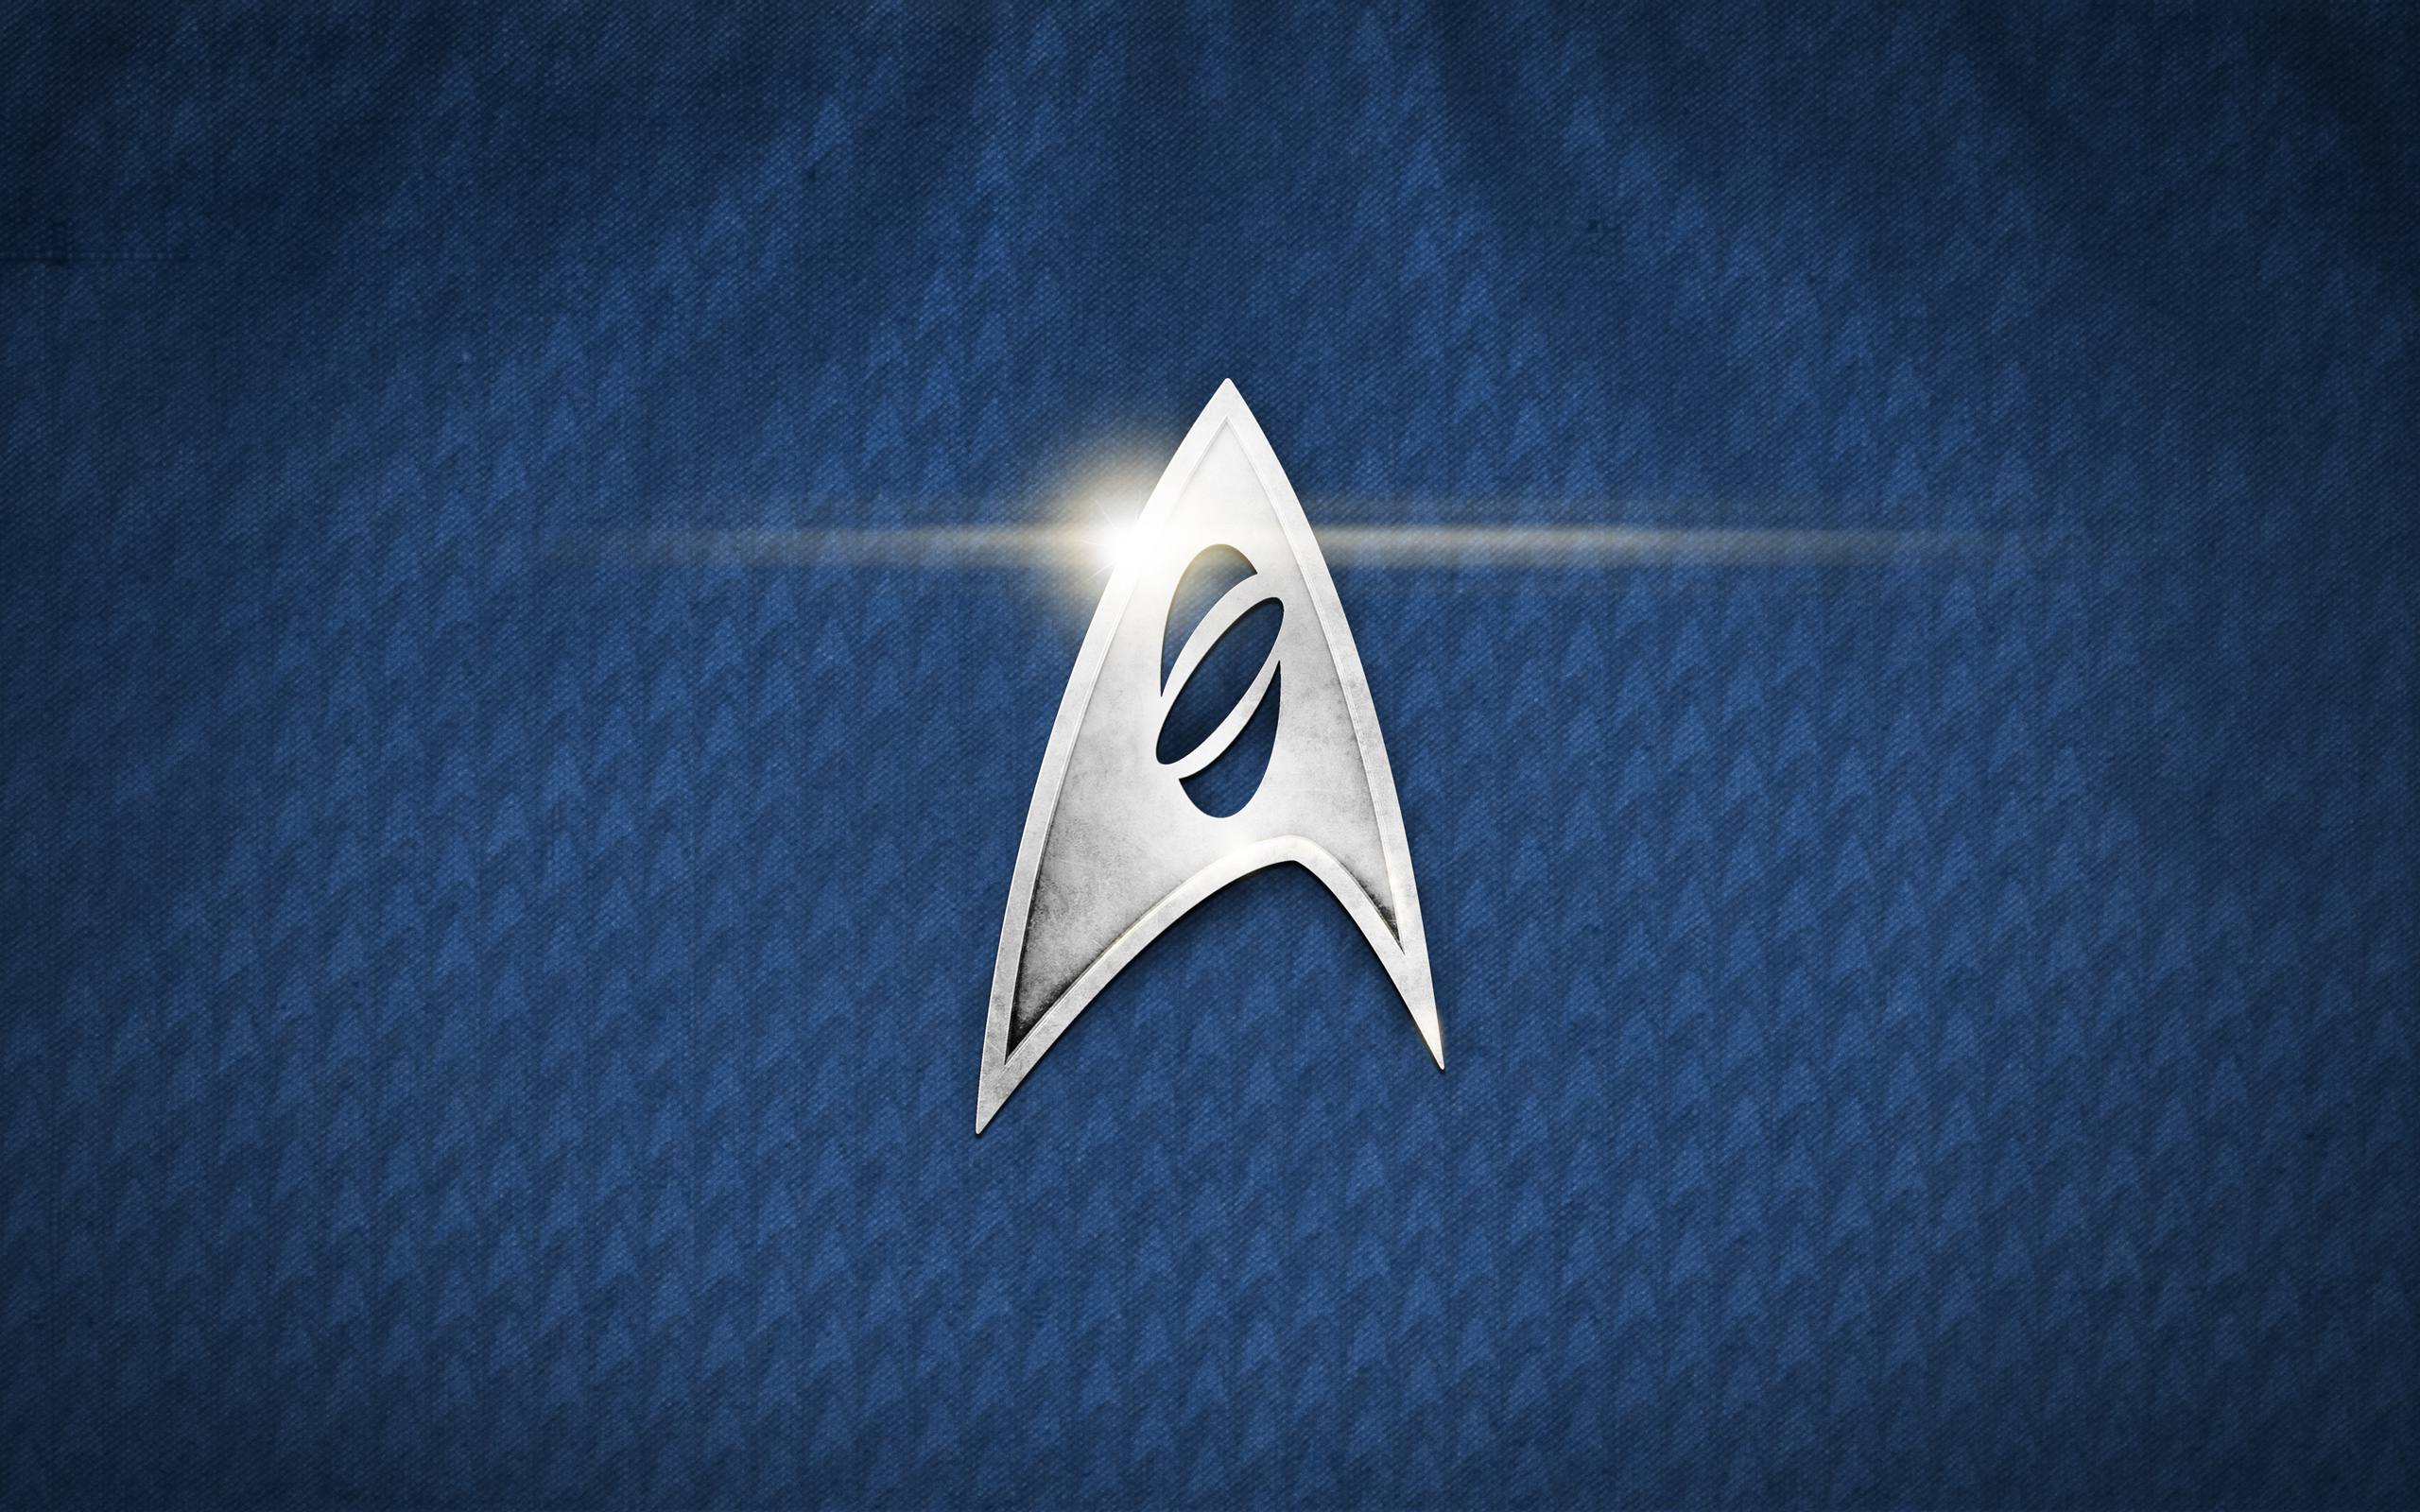 Star Trek Wallpapers 171 Awesome Wallpapers 2560x1600